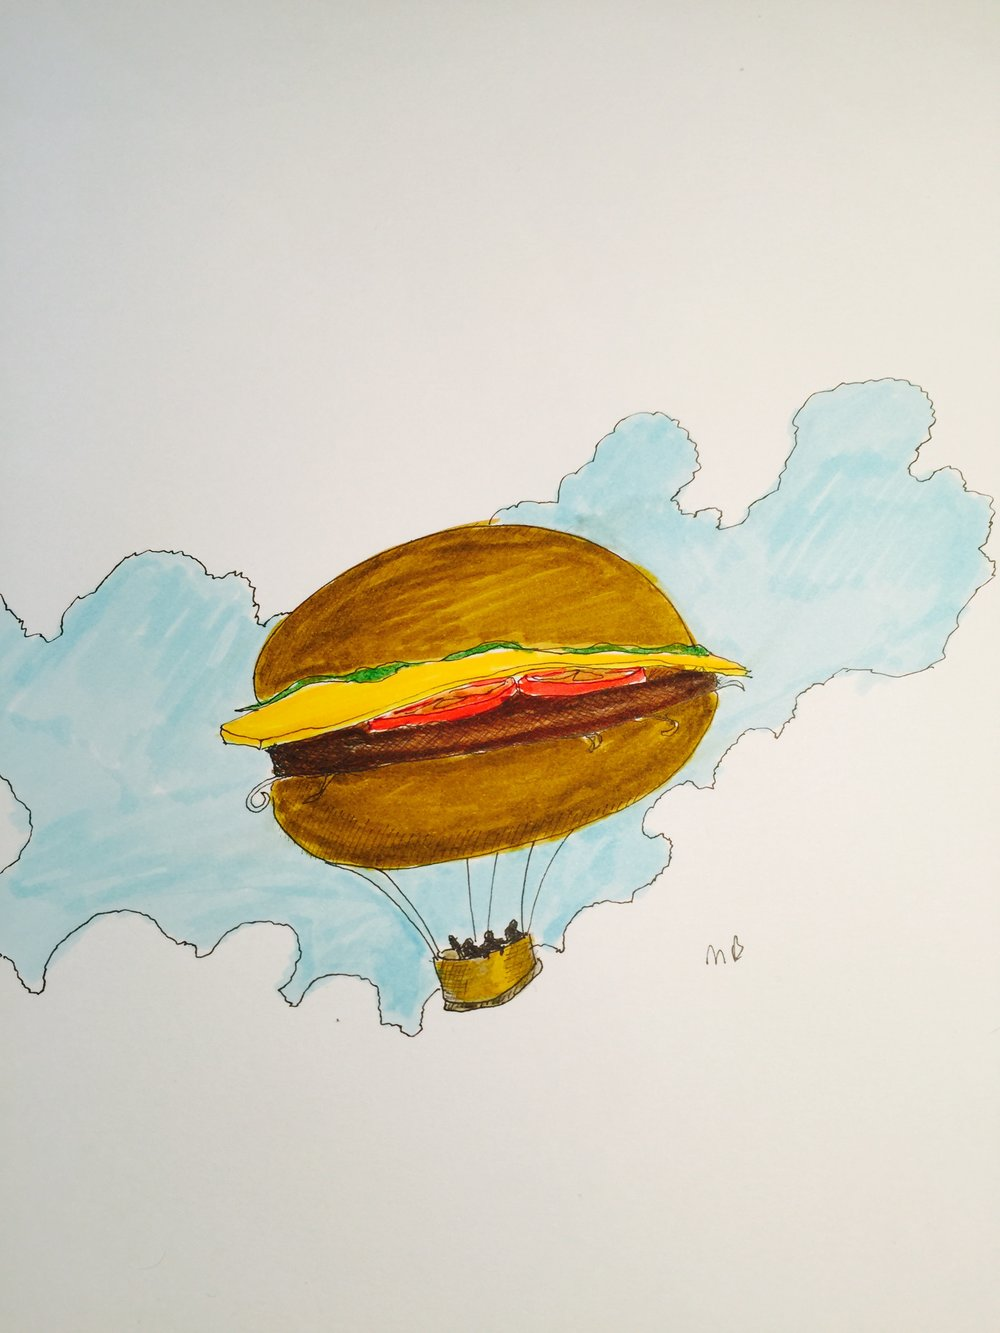 Hamburger balloon